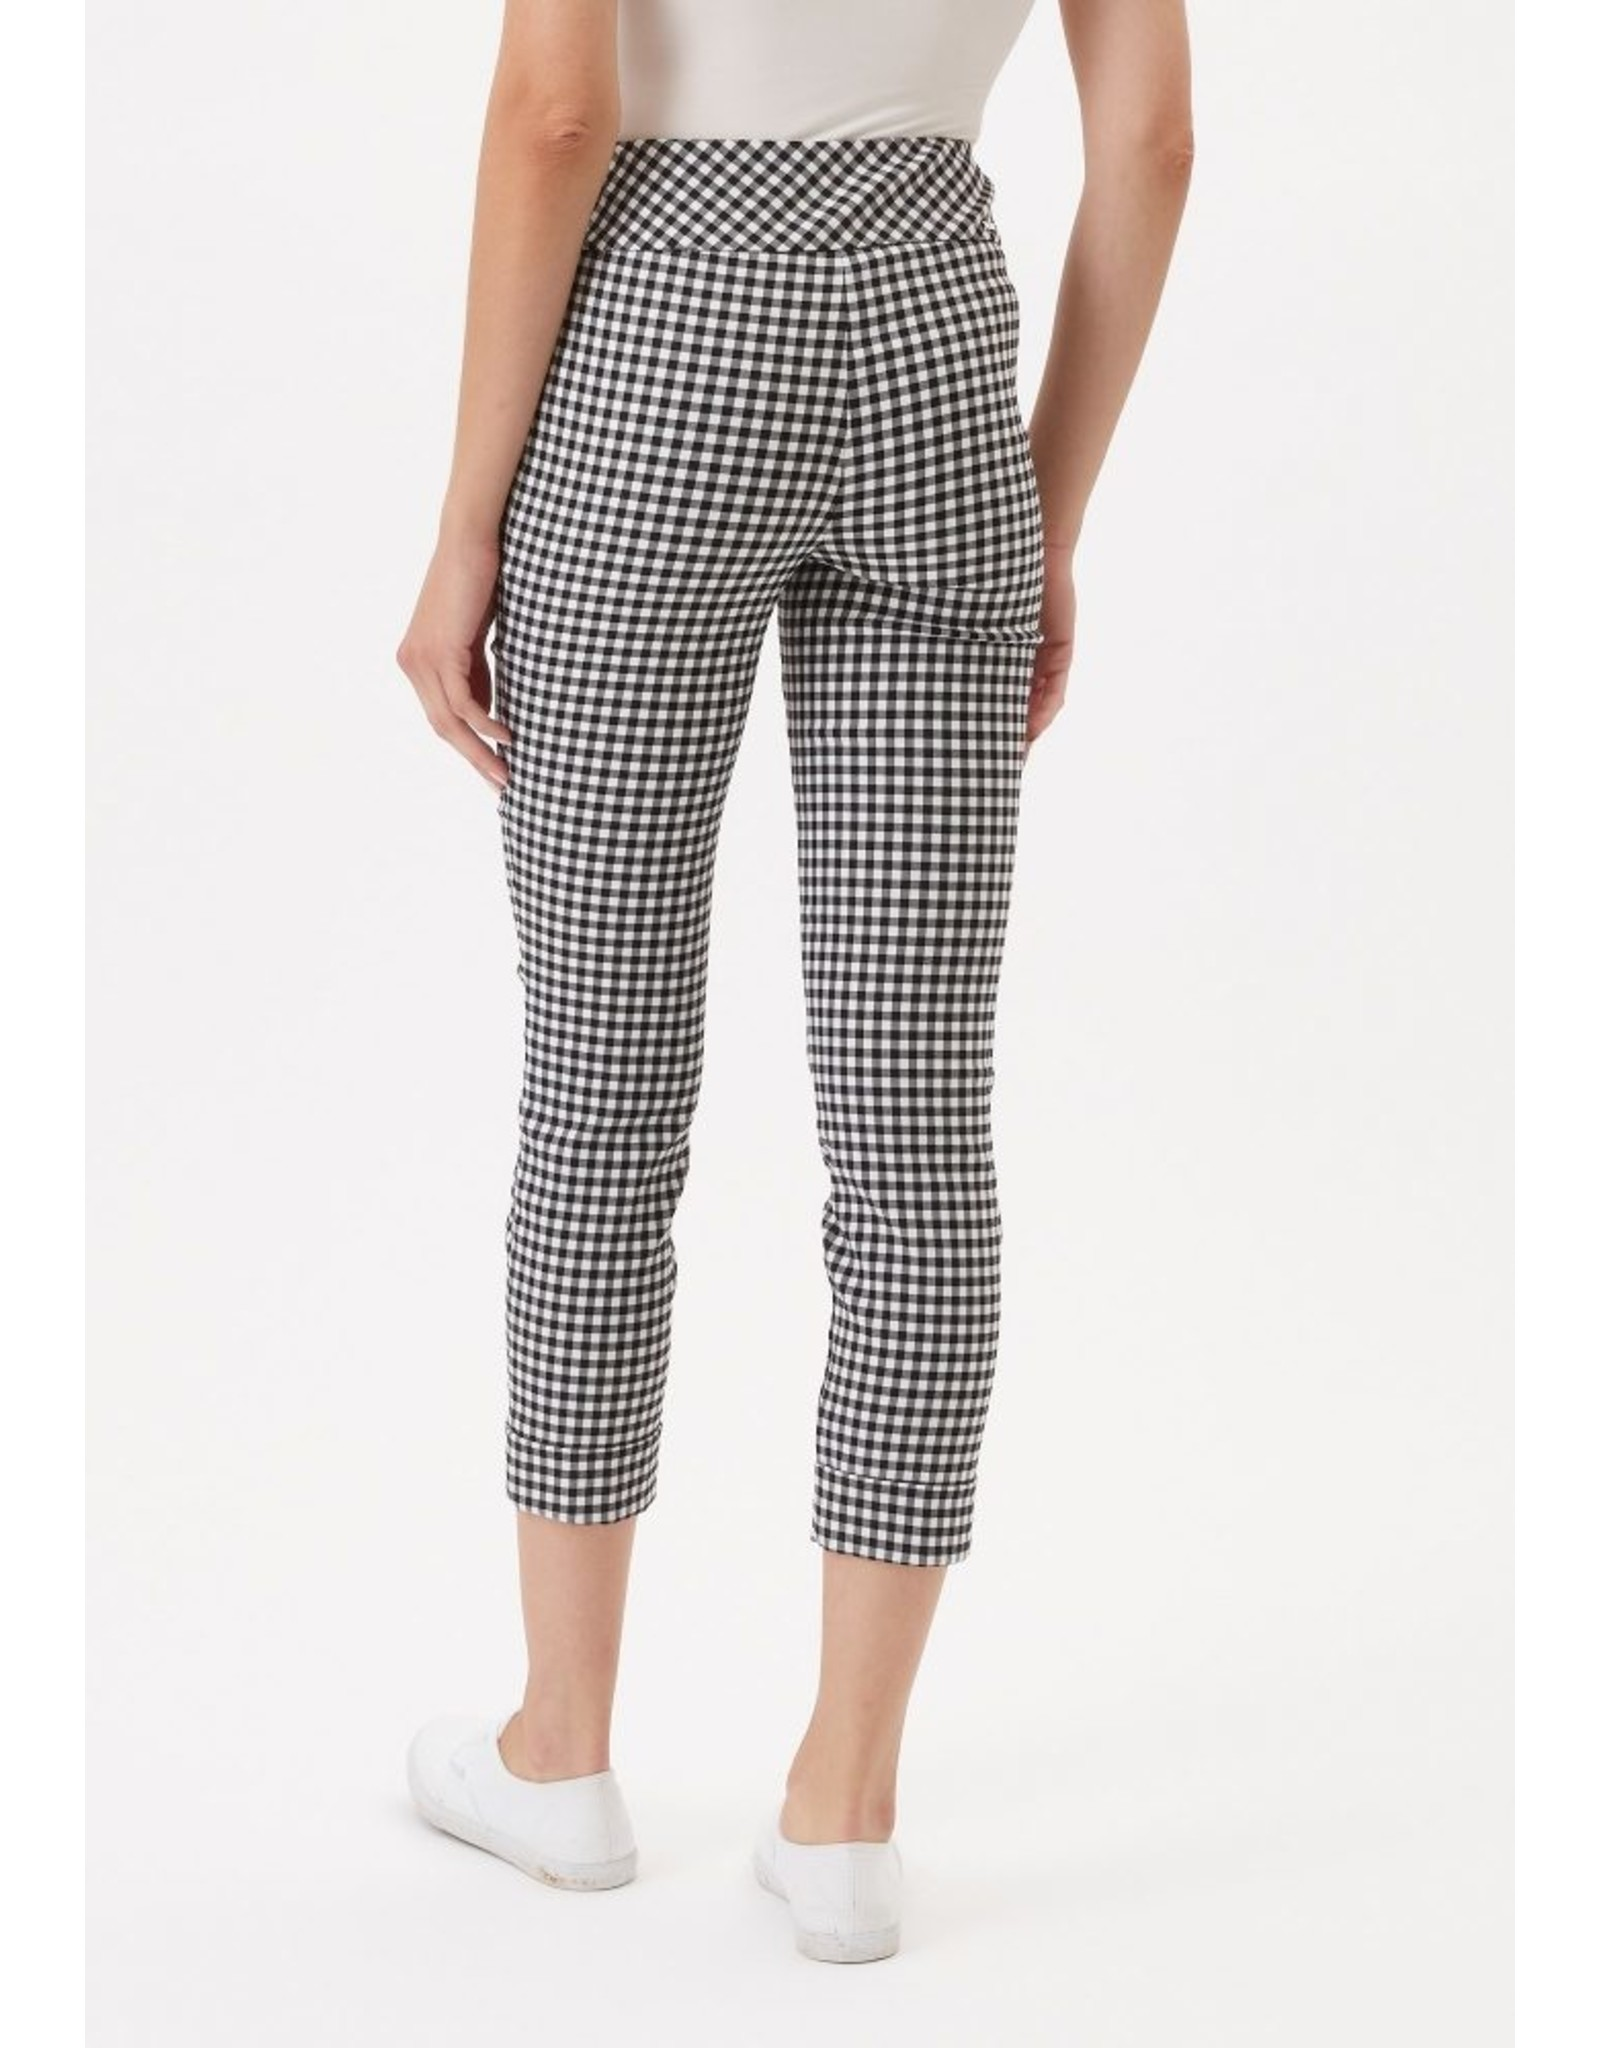 UP Gingham